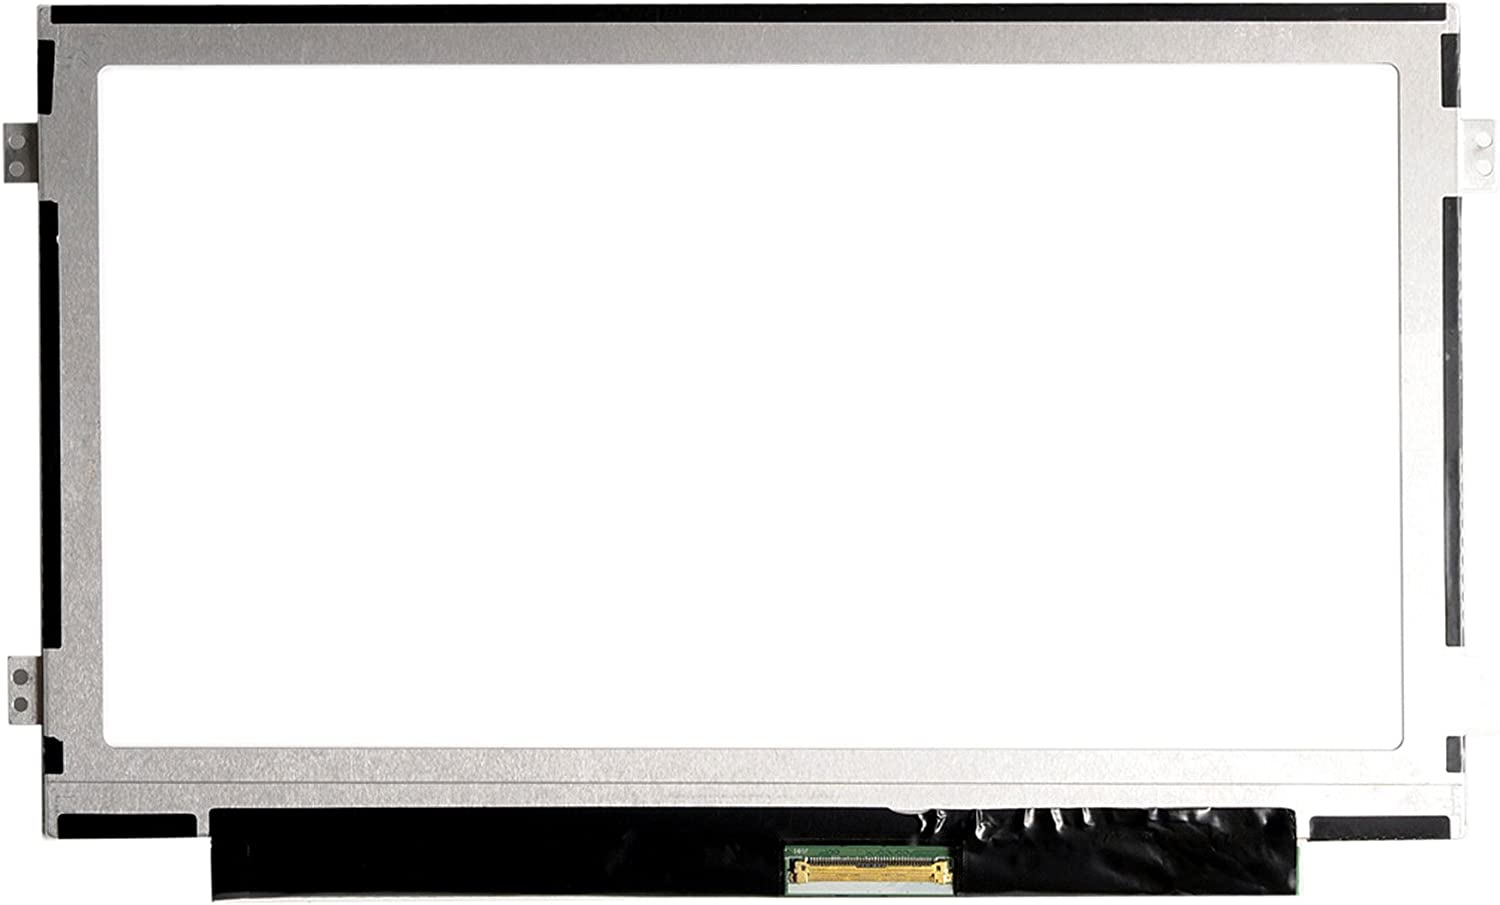 "ACER ASPIRE ONE D255E / D260 Netbook Replacement Laptop LCD SCREEN 10.1"" WSVGA LED"